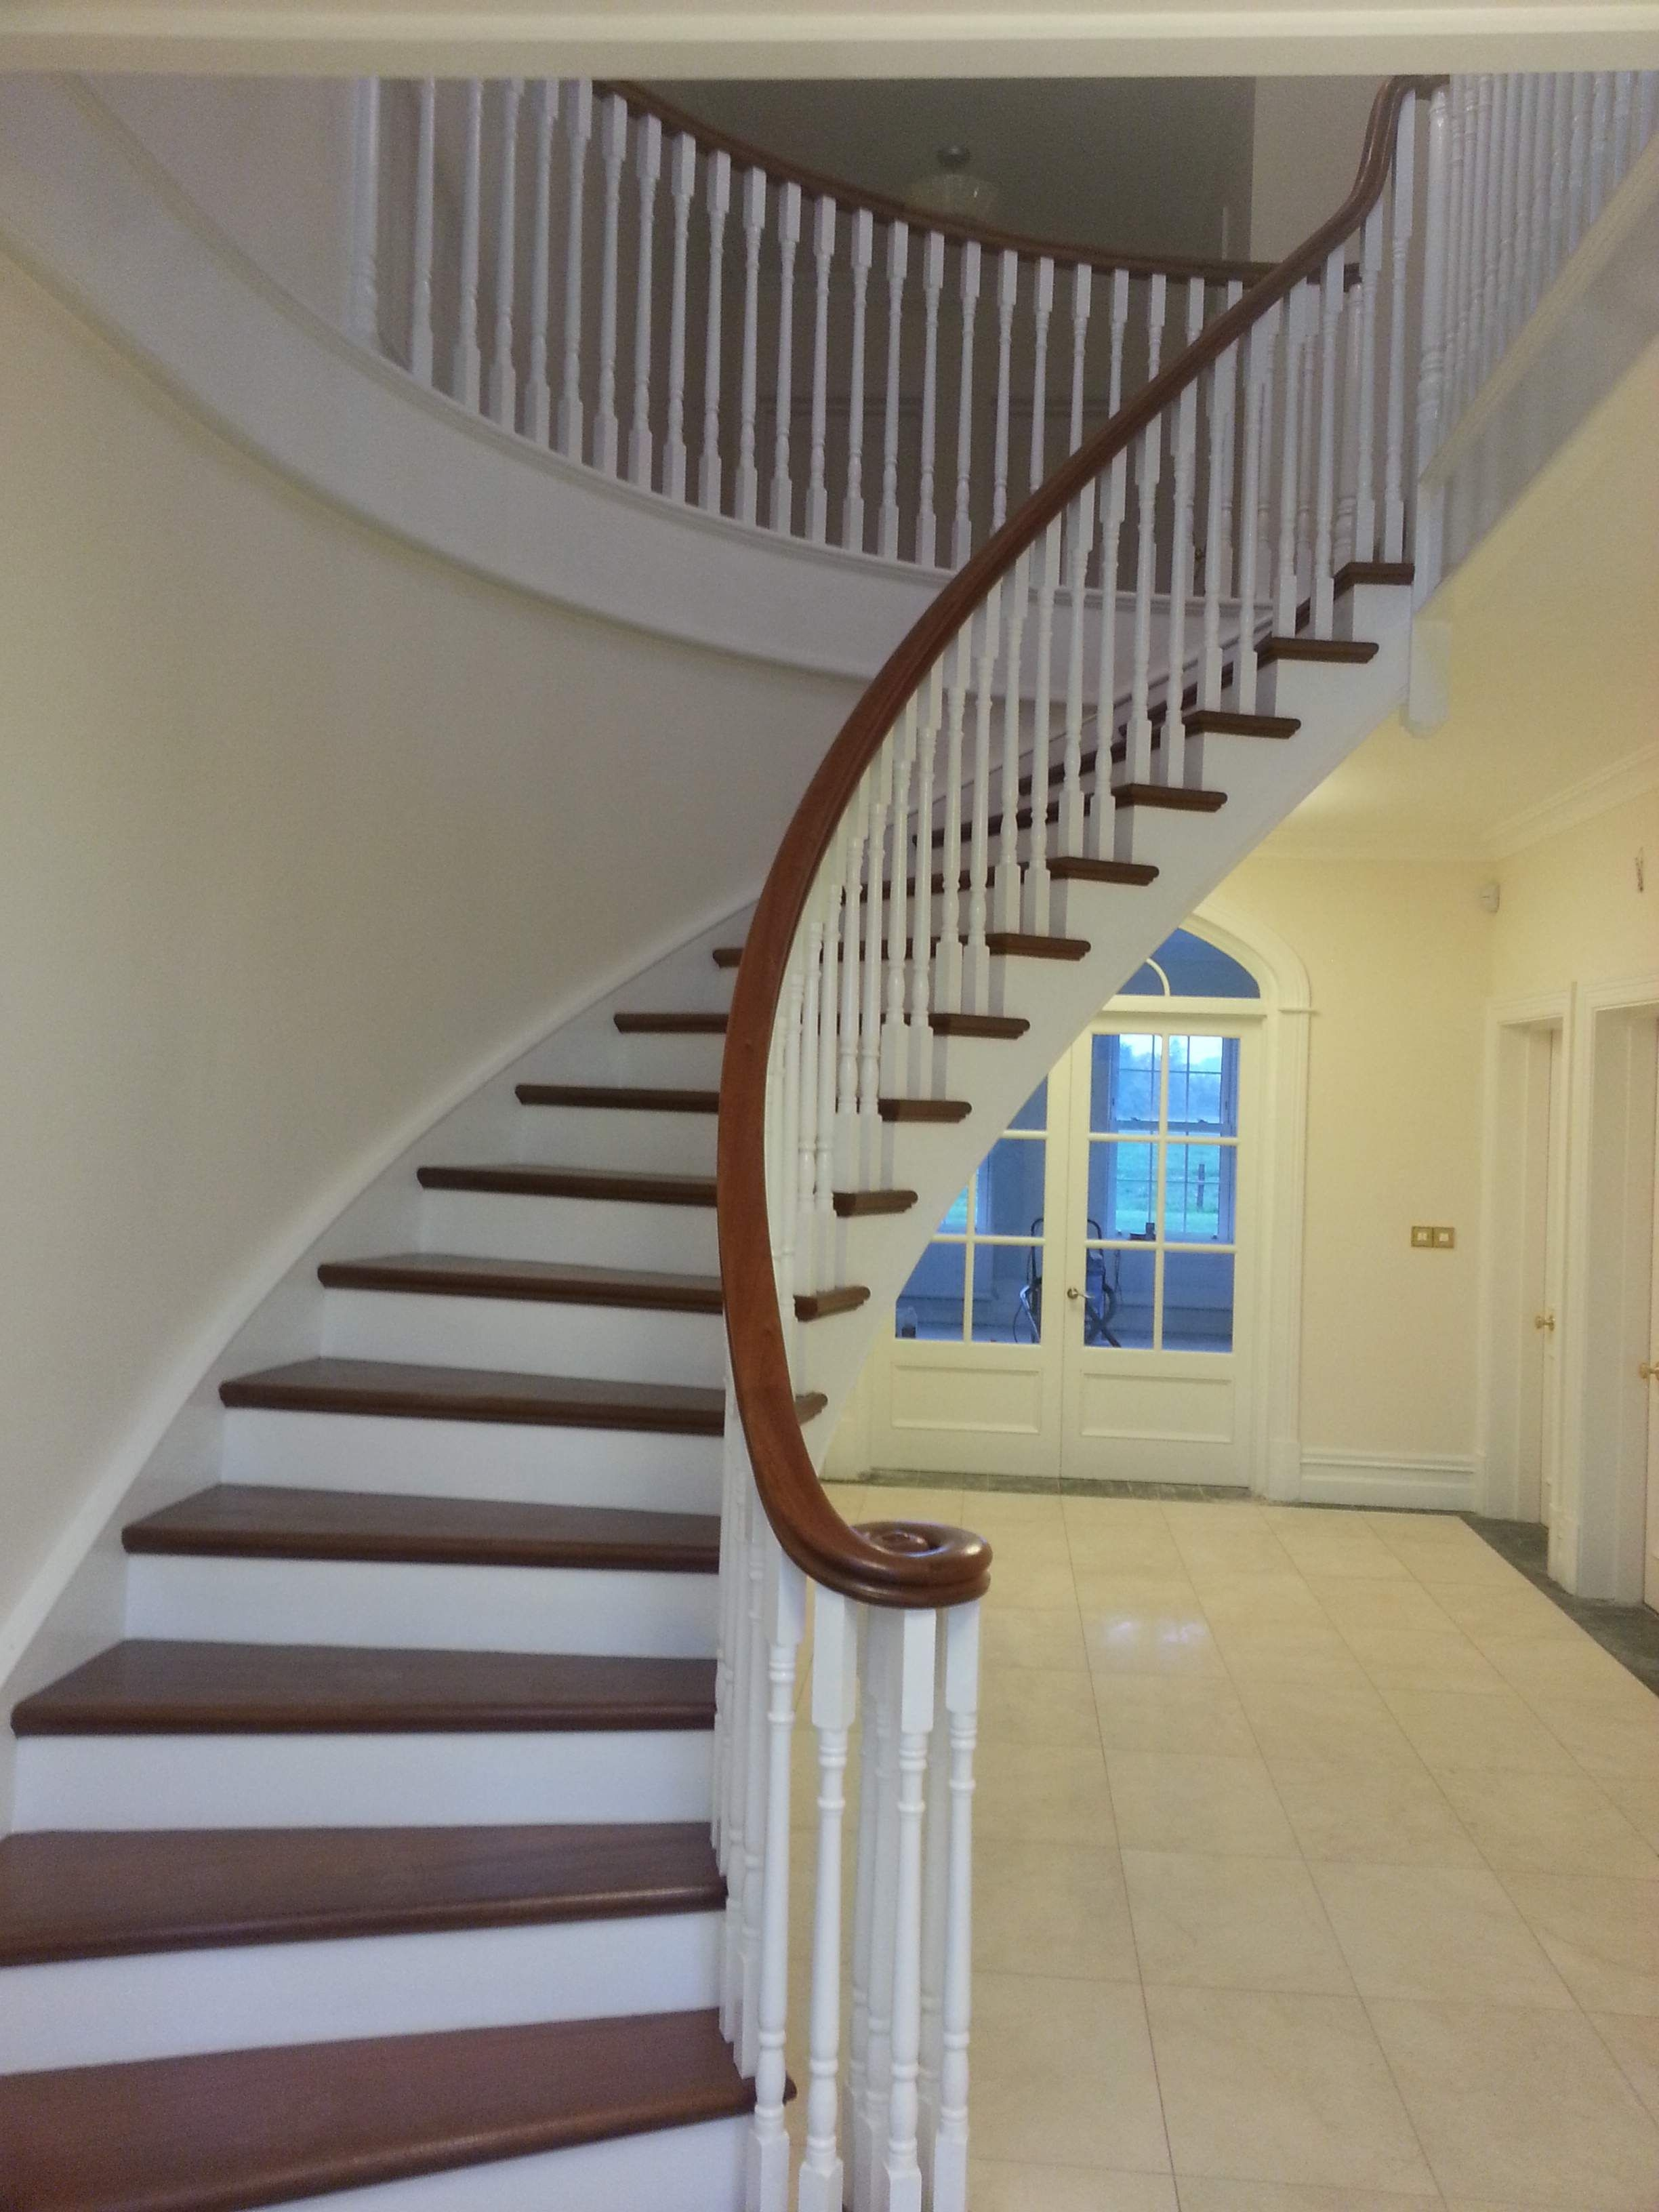 Curved Stairs With Mahogany Treads And Handrail Stairs | Mahogany Handrails For Stairs